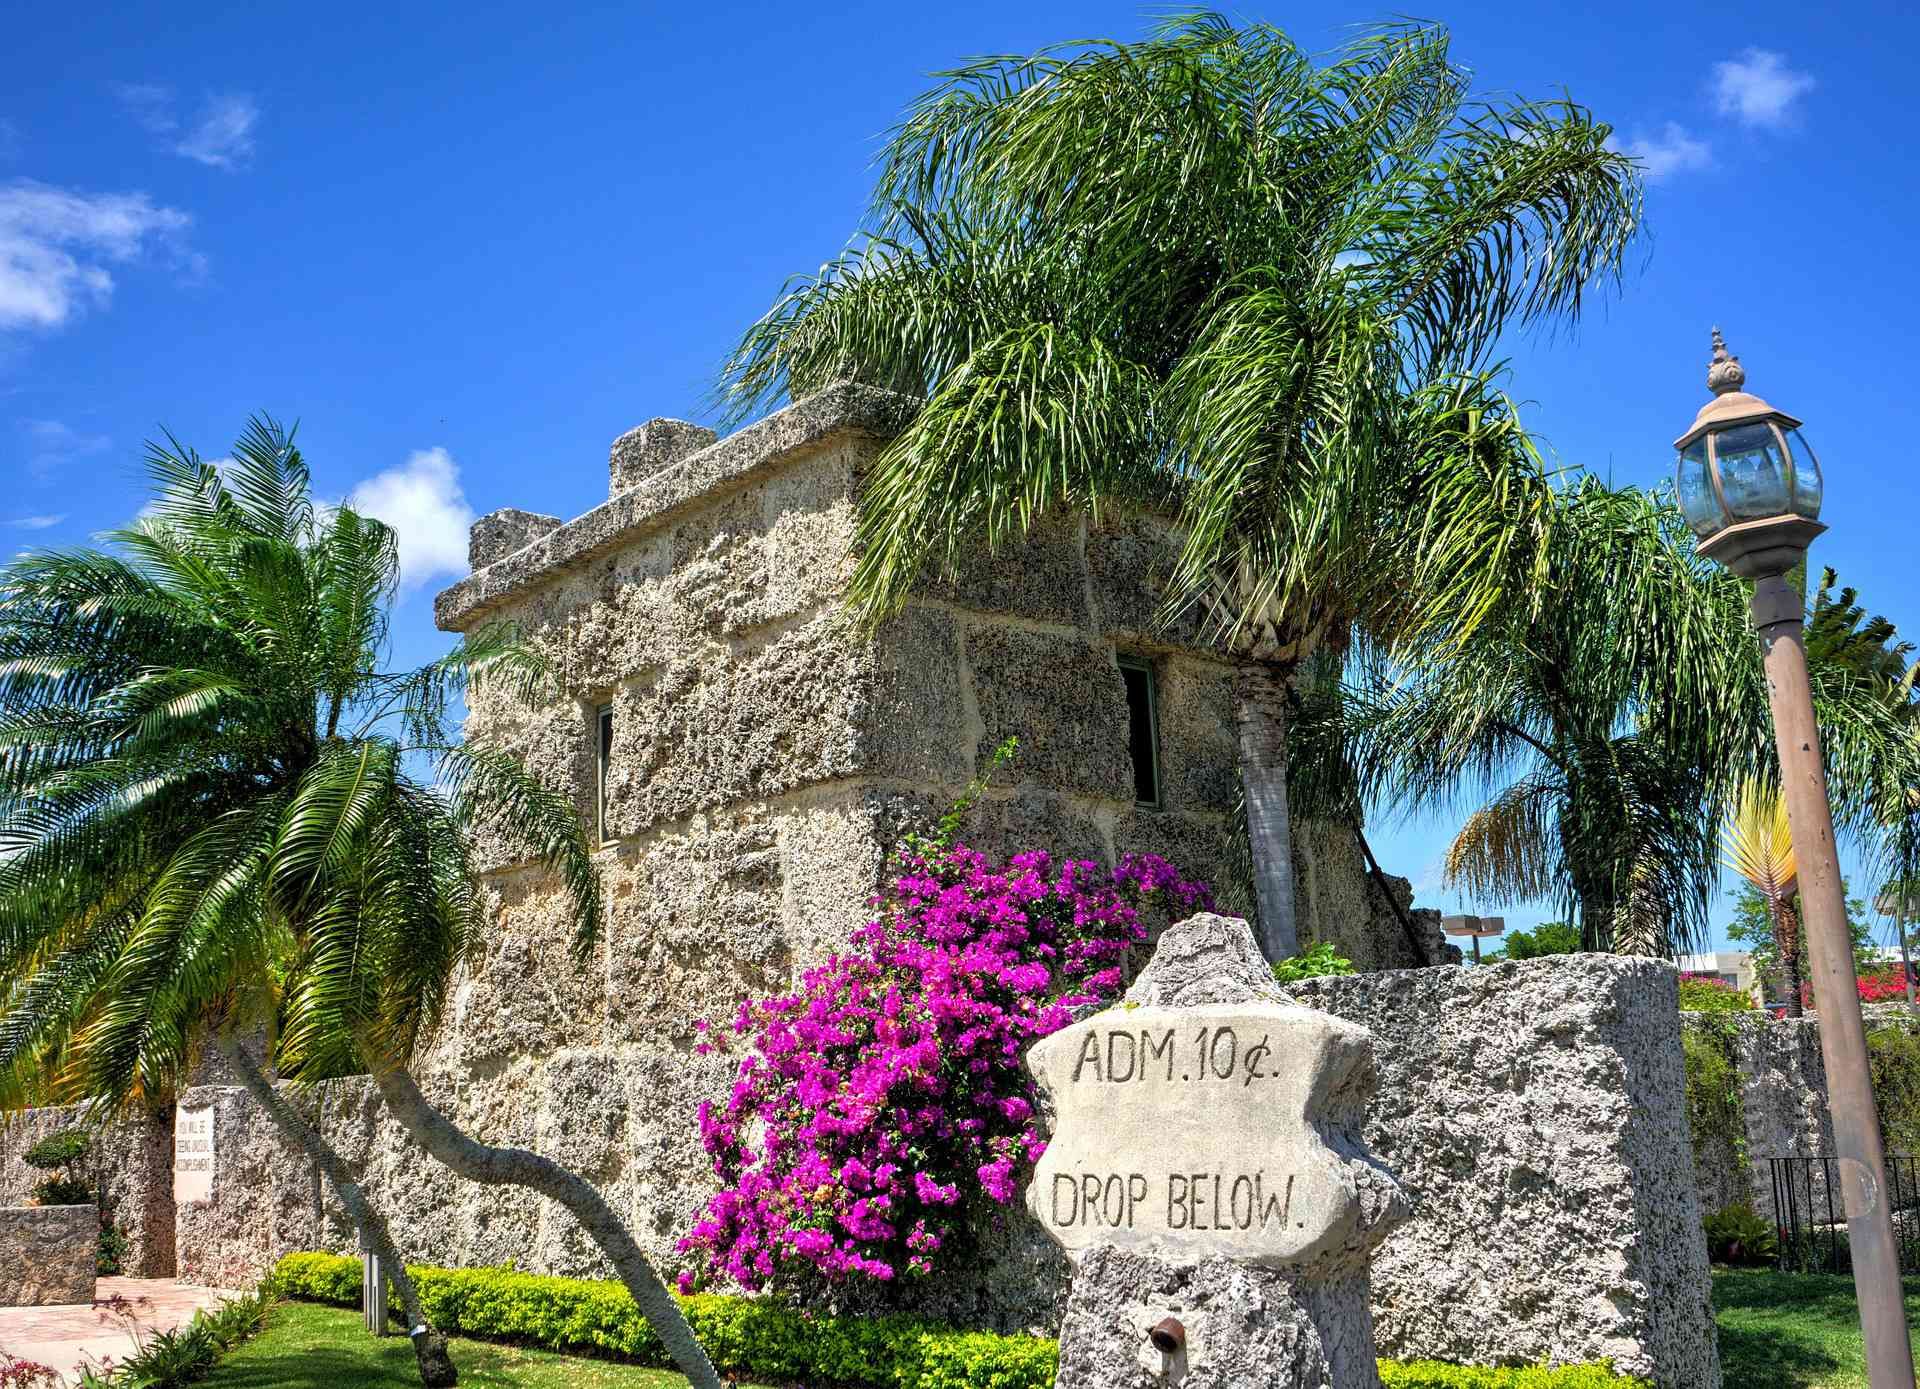 Coral Castle entrance with trees and flowers